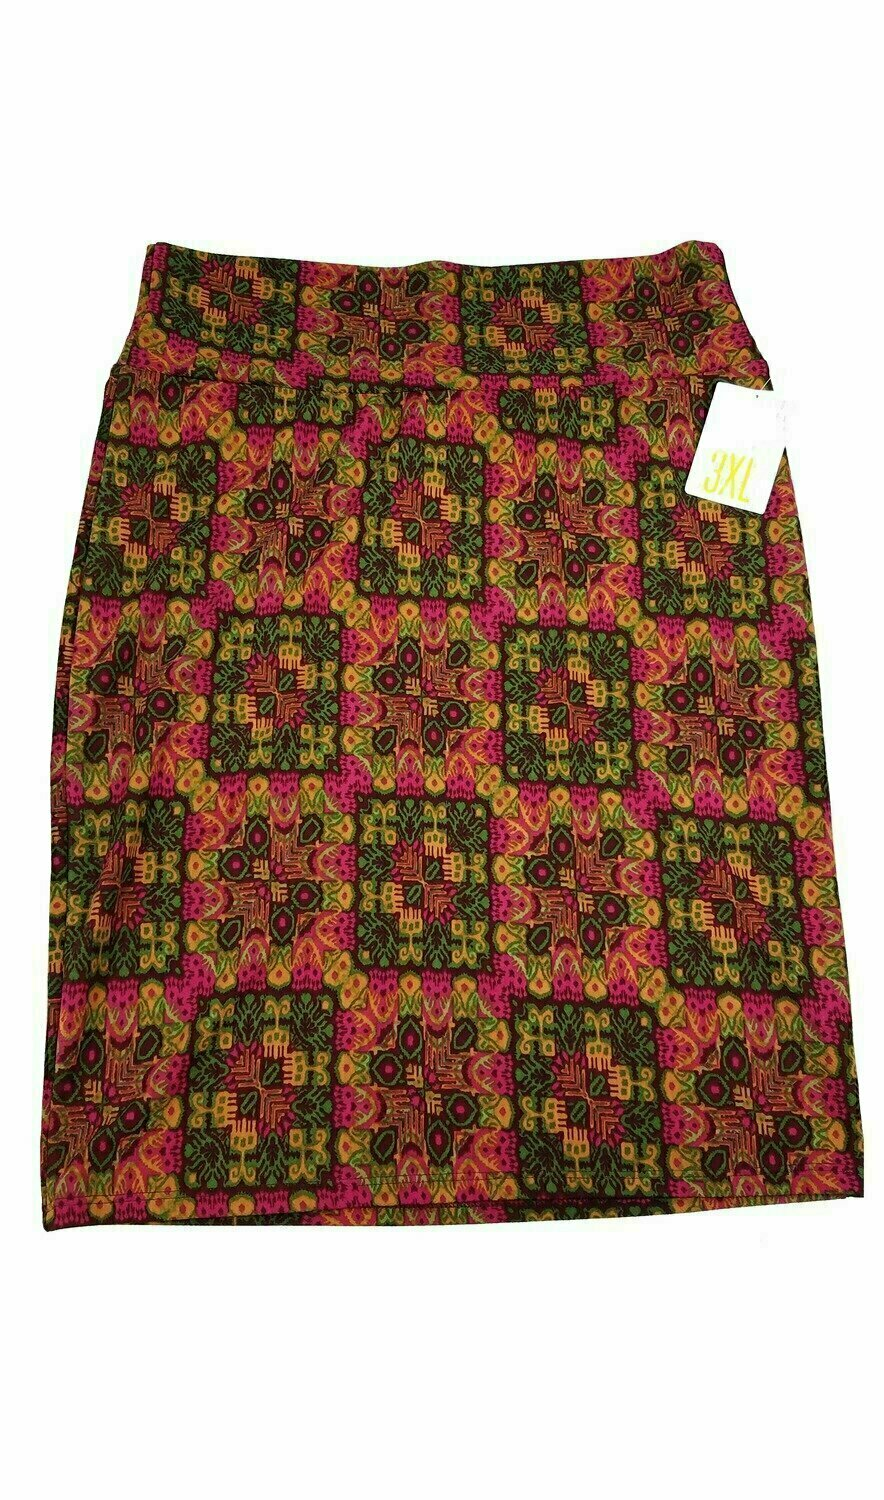 Cassie XXX-Large (3XL) LuLaRoe Womens Knee Length Pencil Skirt Fits 24-26